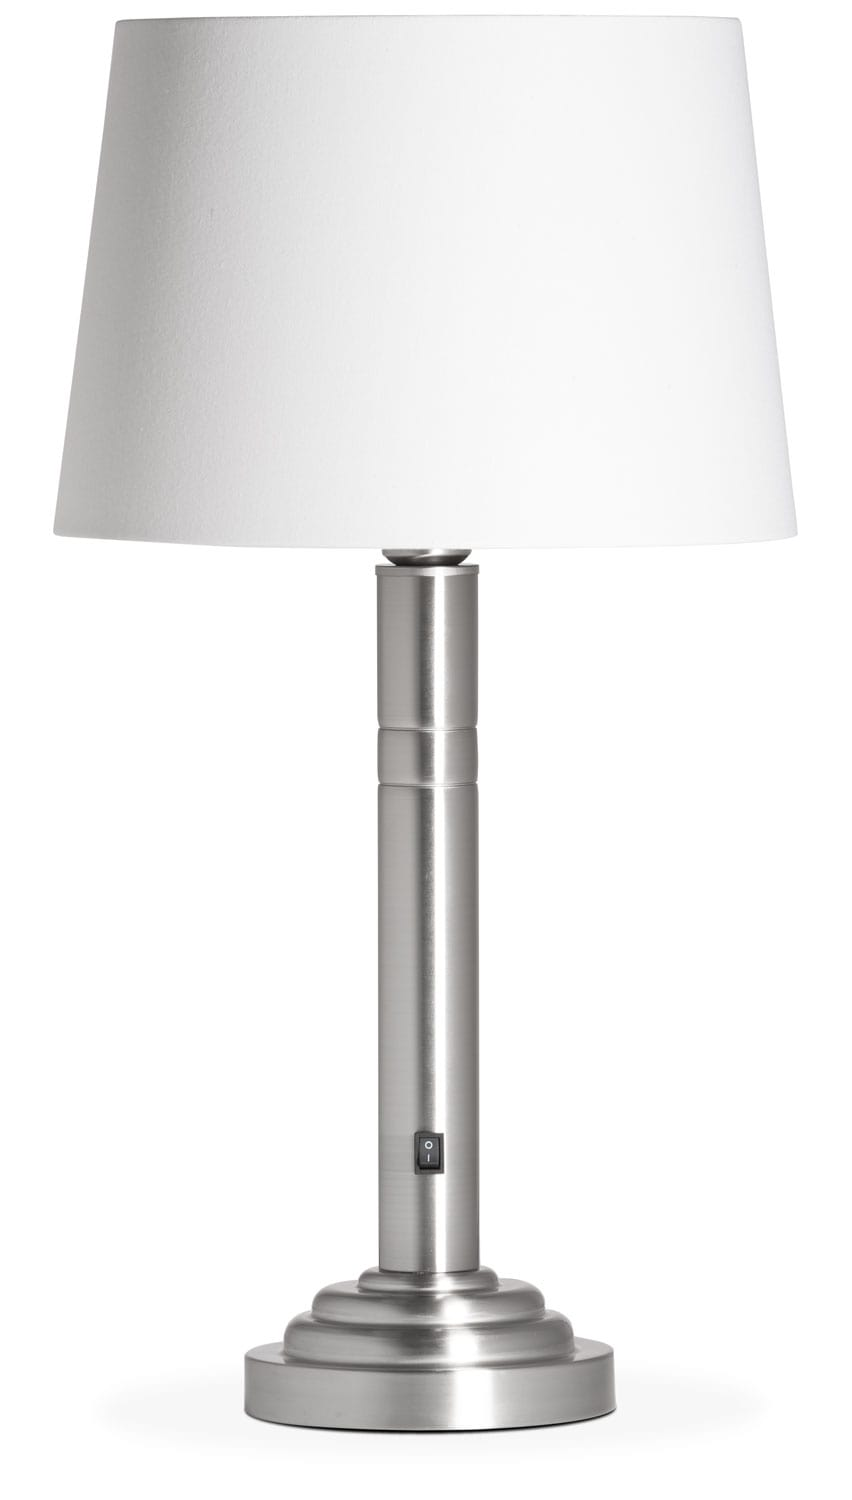 Home Accessories - Brushed Nickel Table Lamp with White Linen Shade